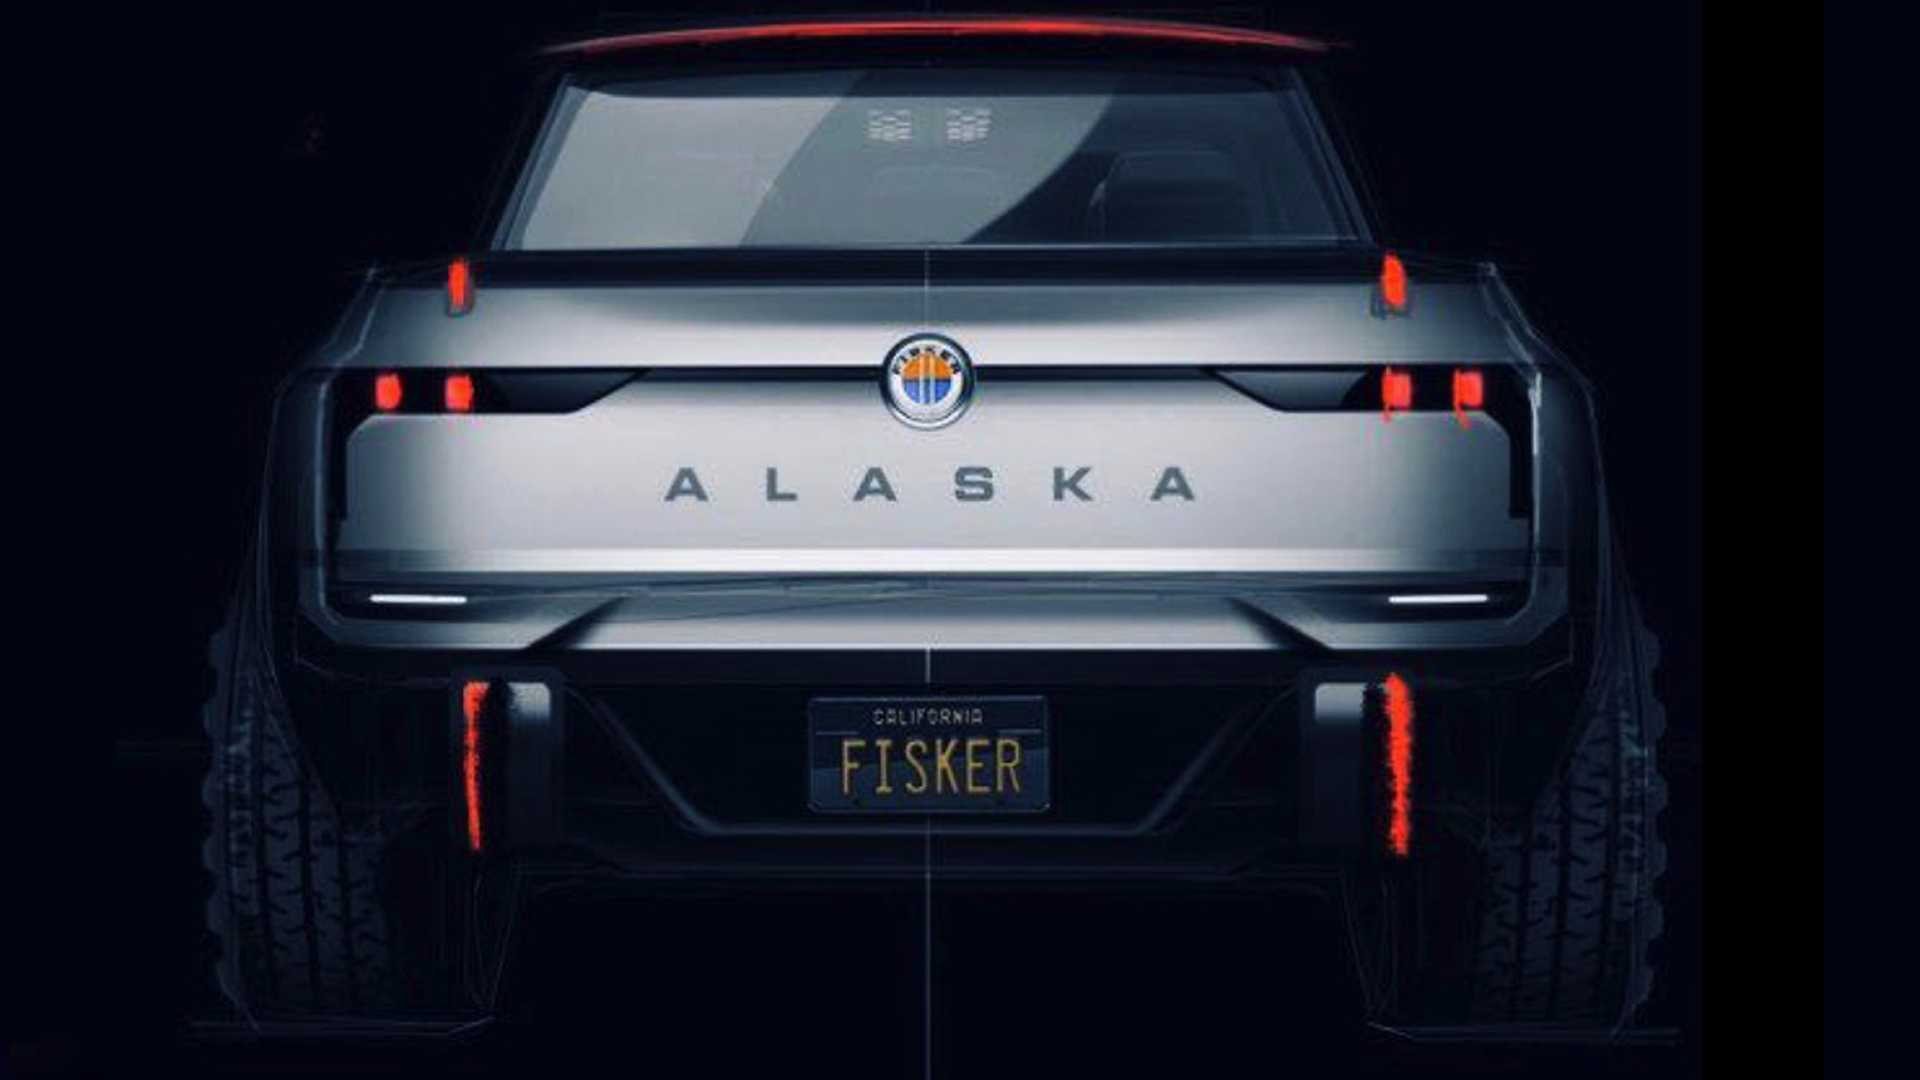 Computer-generated image of Fisker Alaska pickup truck - Photo credit: Henrik Fisker/Twitter